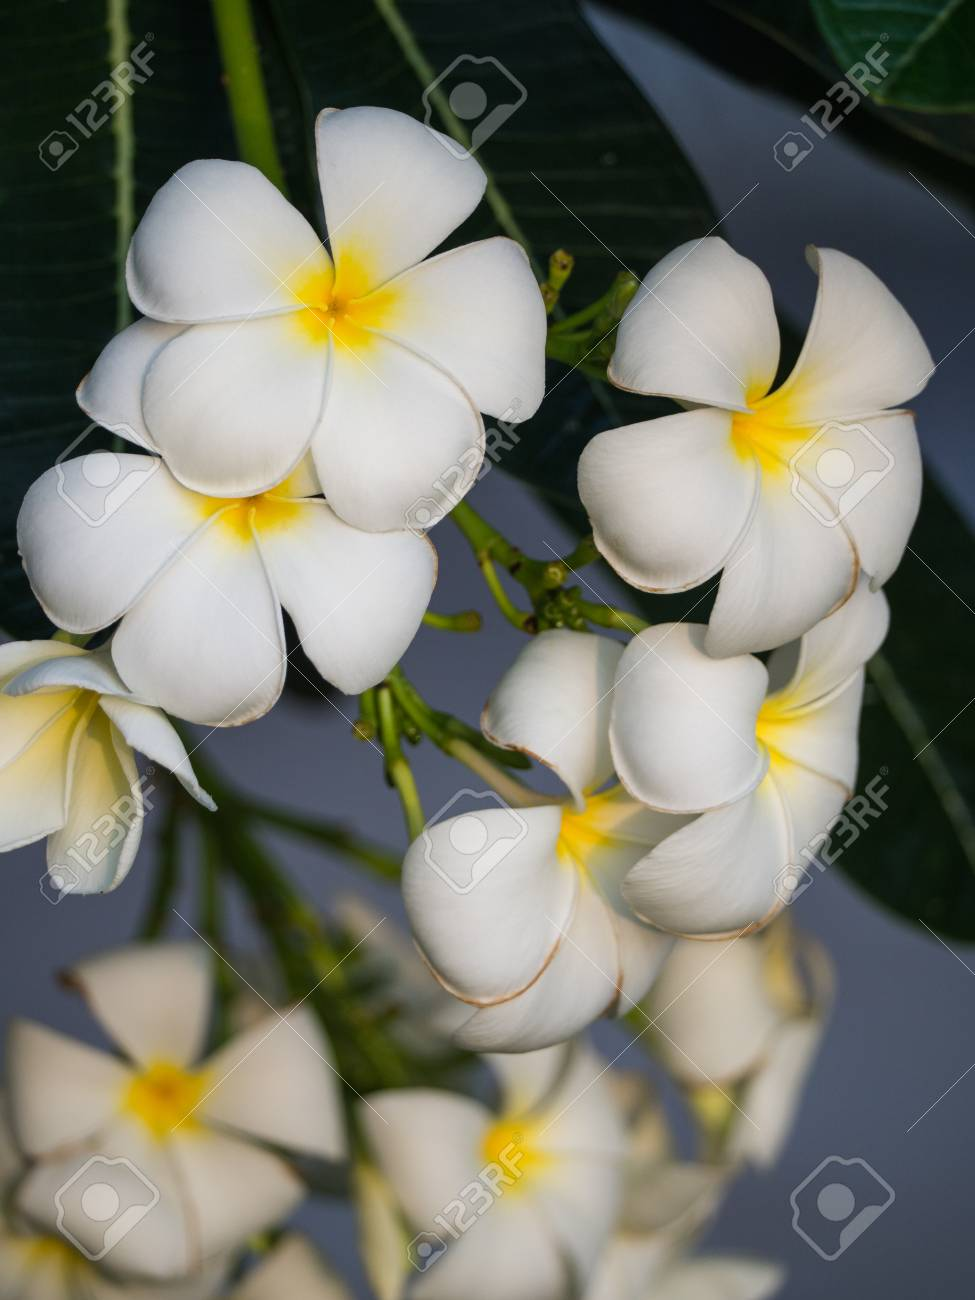 White yellow plumeria flowers hanging on the tree stock photo stock photo white yellow plumeria flowers hanging on the tree mightylinksfo